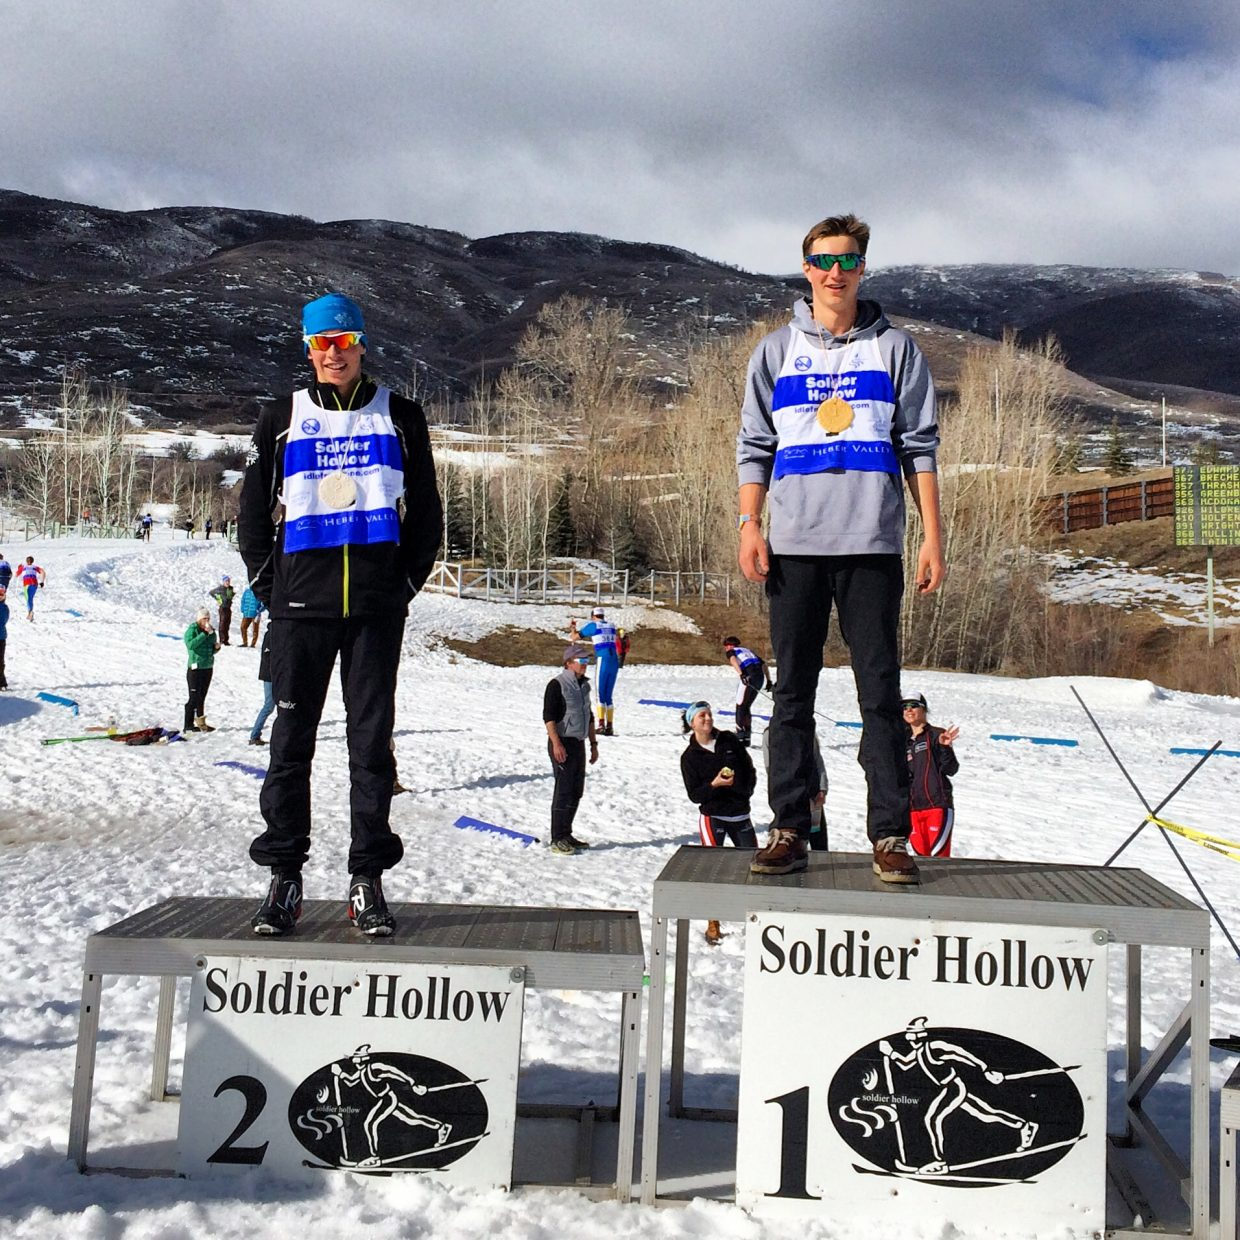 Noel won both days in the u-16 category. His sprint qualifier would have won u-18. Tyler finished just behind him in 2nd for his best race yet! Submitted by Josh Smullin.